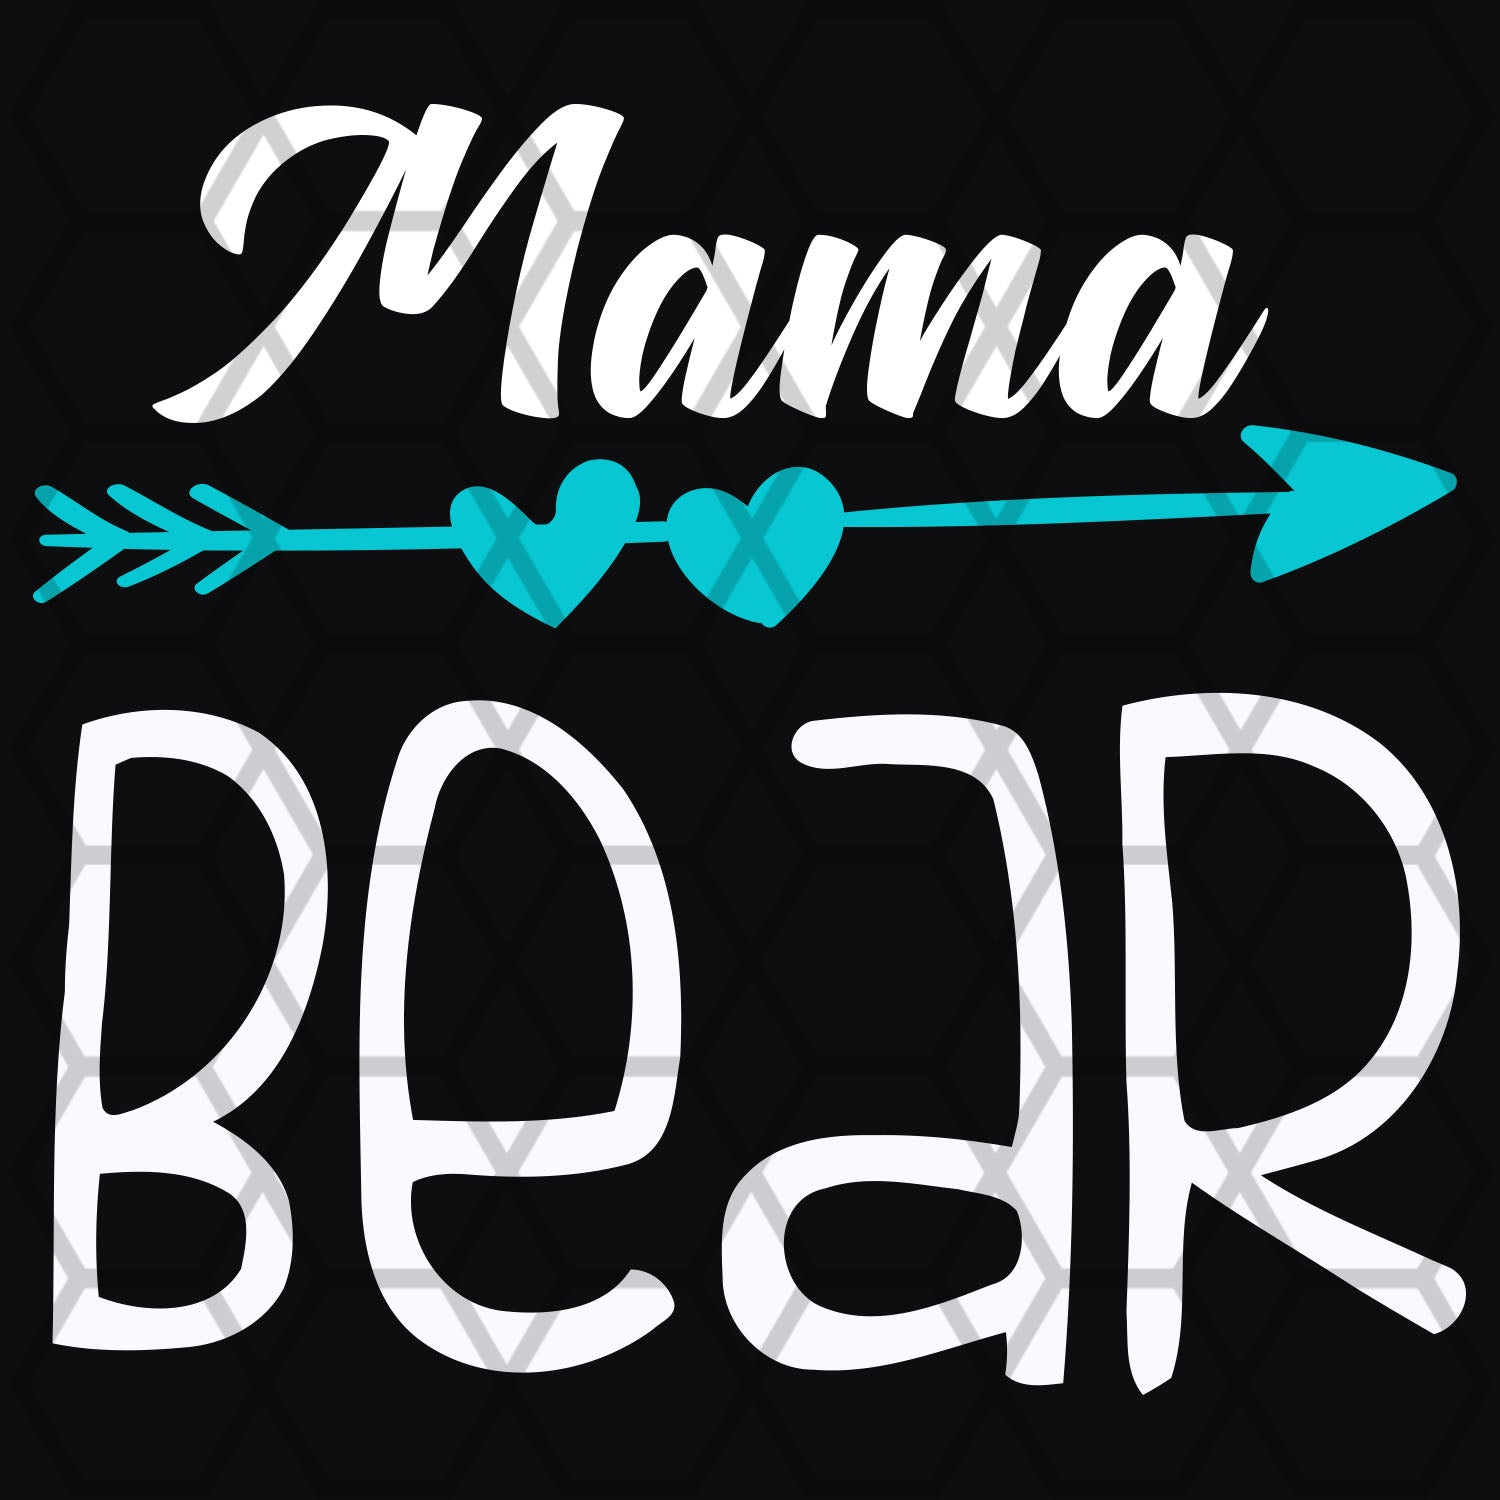 Mama bear, mama svg, mama gift, mama life, best mama ever, mama birthday, bear svg, bear, bear lover svg, family svg, family shirt,family gift,trending svg, Files For Silhouette, Files For Cricut, SVG, DXF, EPS, PNG, Instant Download